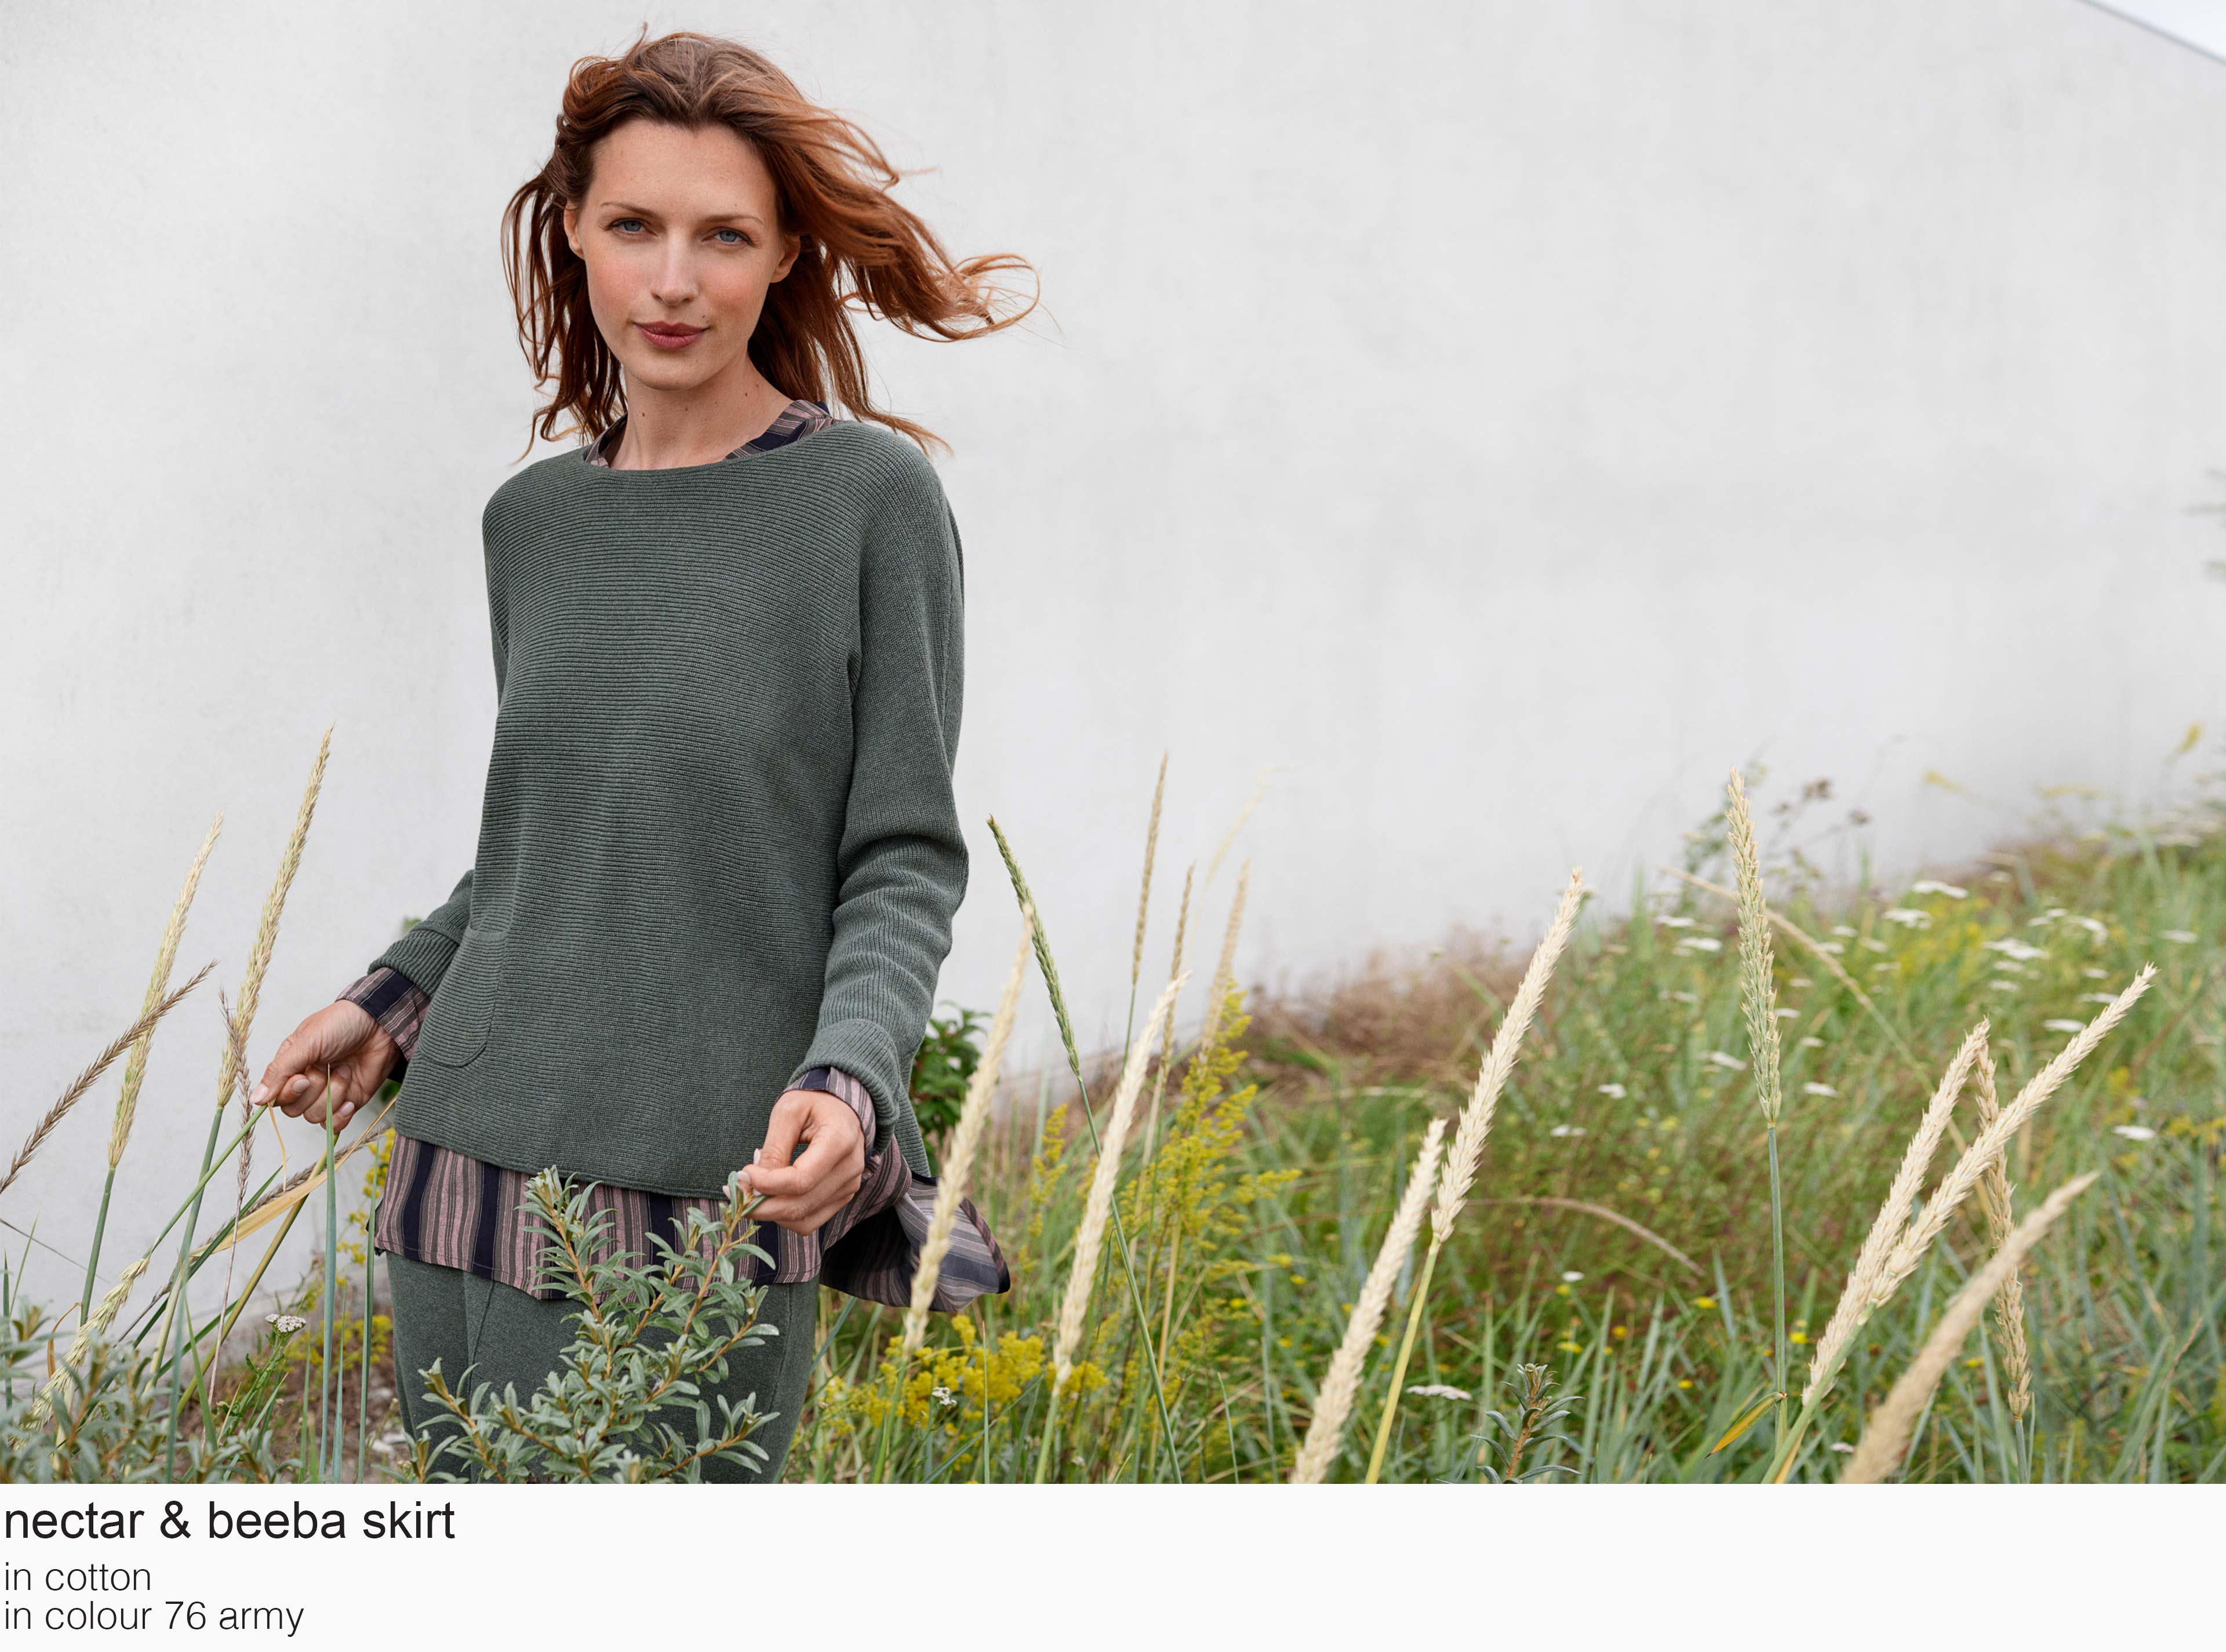 mansted nectar beeba cotton 76 army aw19 aw 2019 Knitwear quality knit multicoloured colour colourful cotton yak lambswool soft versatile feminine beautiful details fashion favourite autumn winter bright colours pullover jumper t-shirt cardigan jacket strik kvalitetsstrik farverig bluser trøjer feminin strik til kvinder